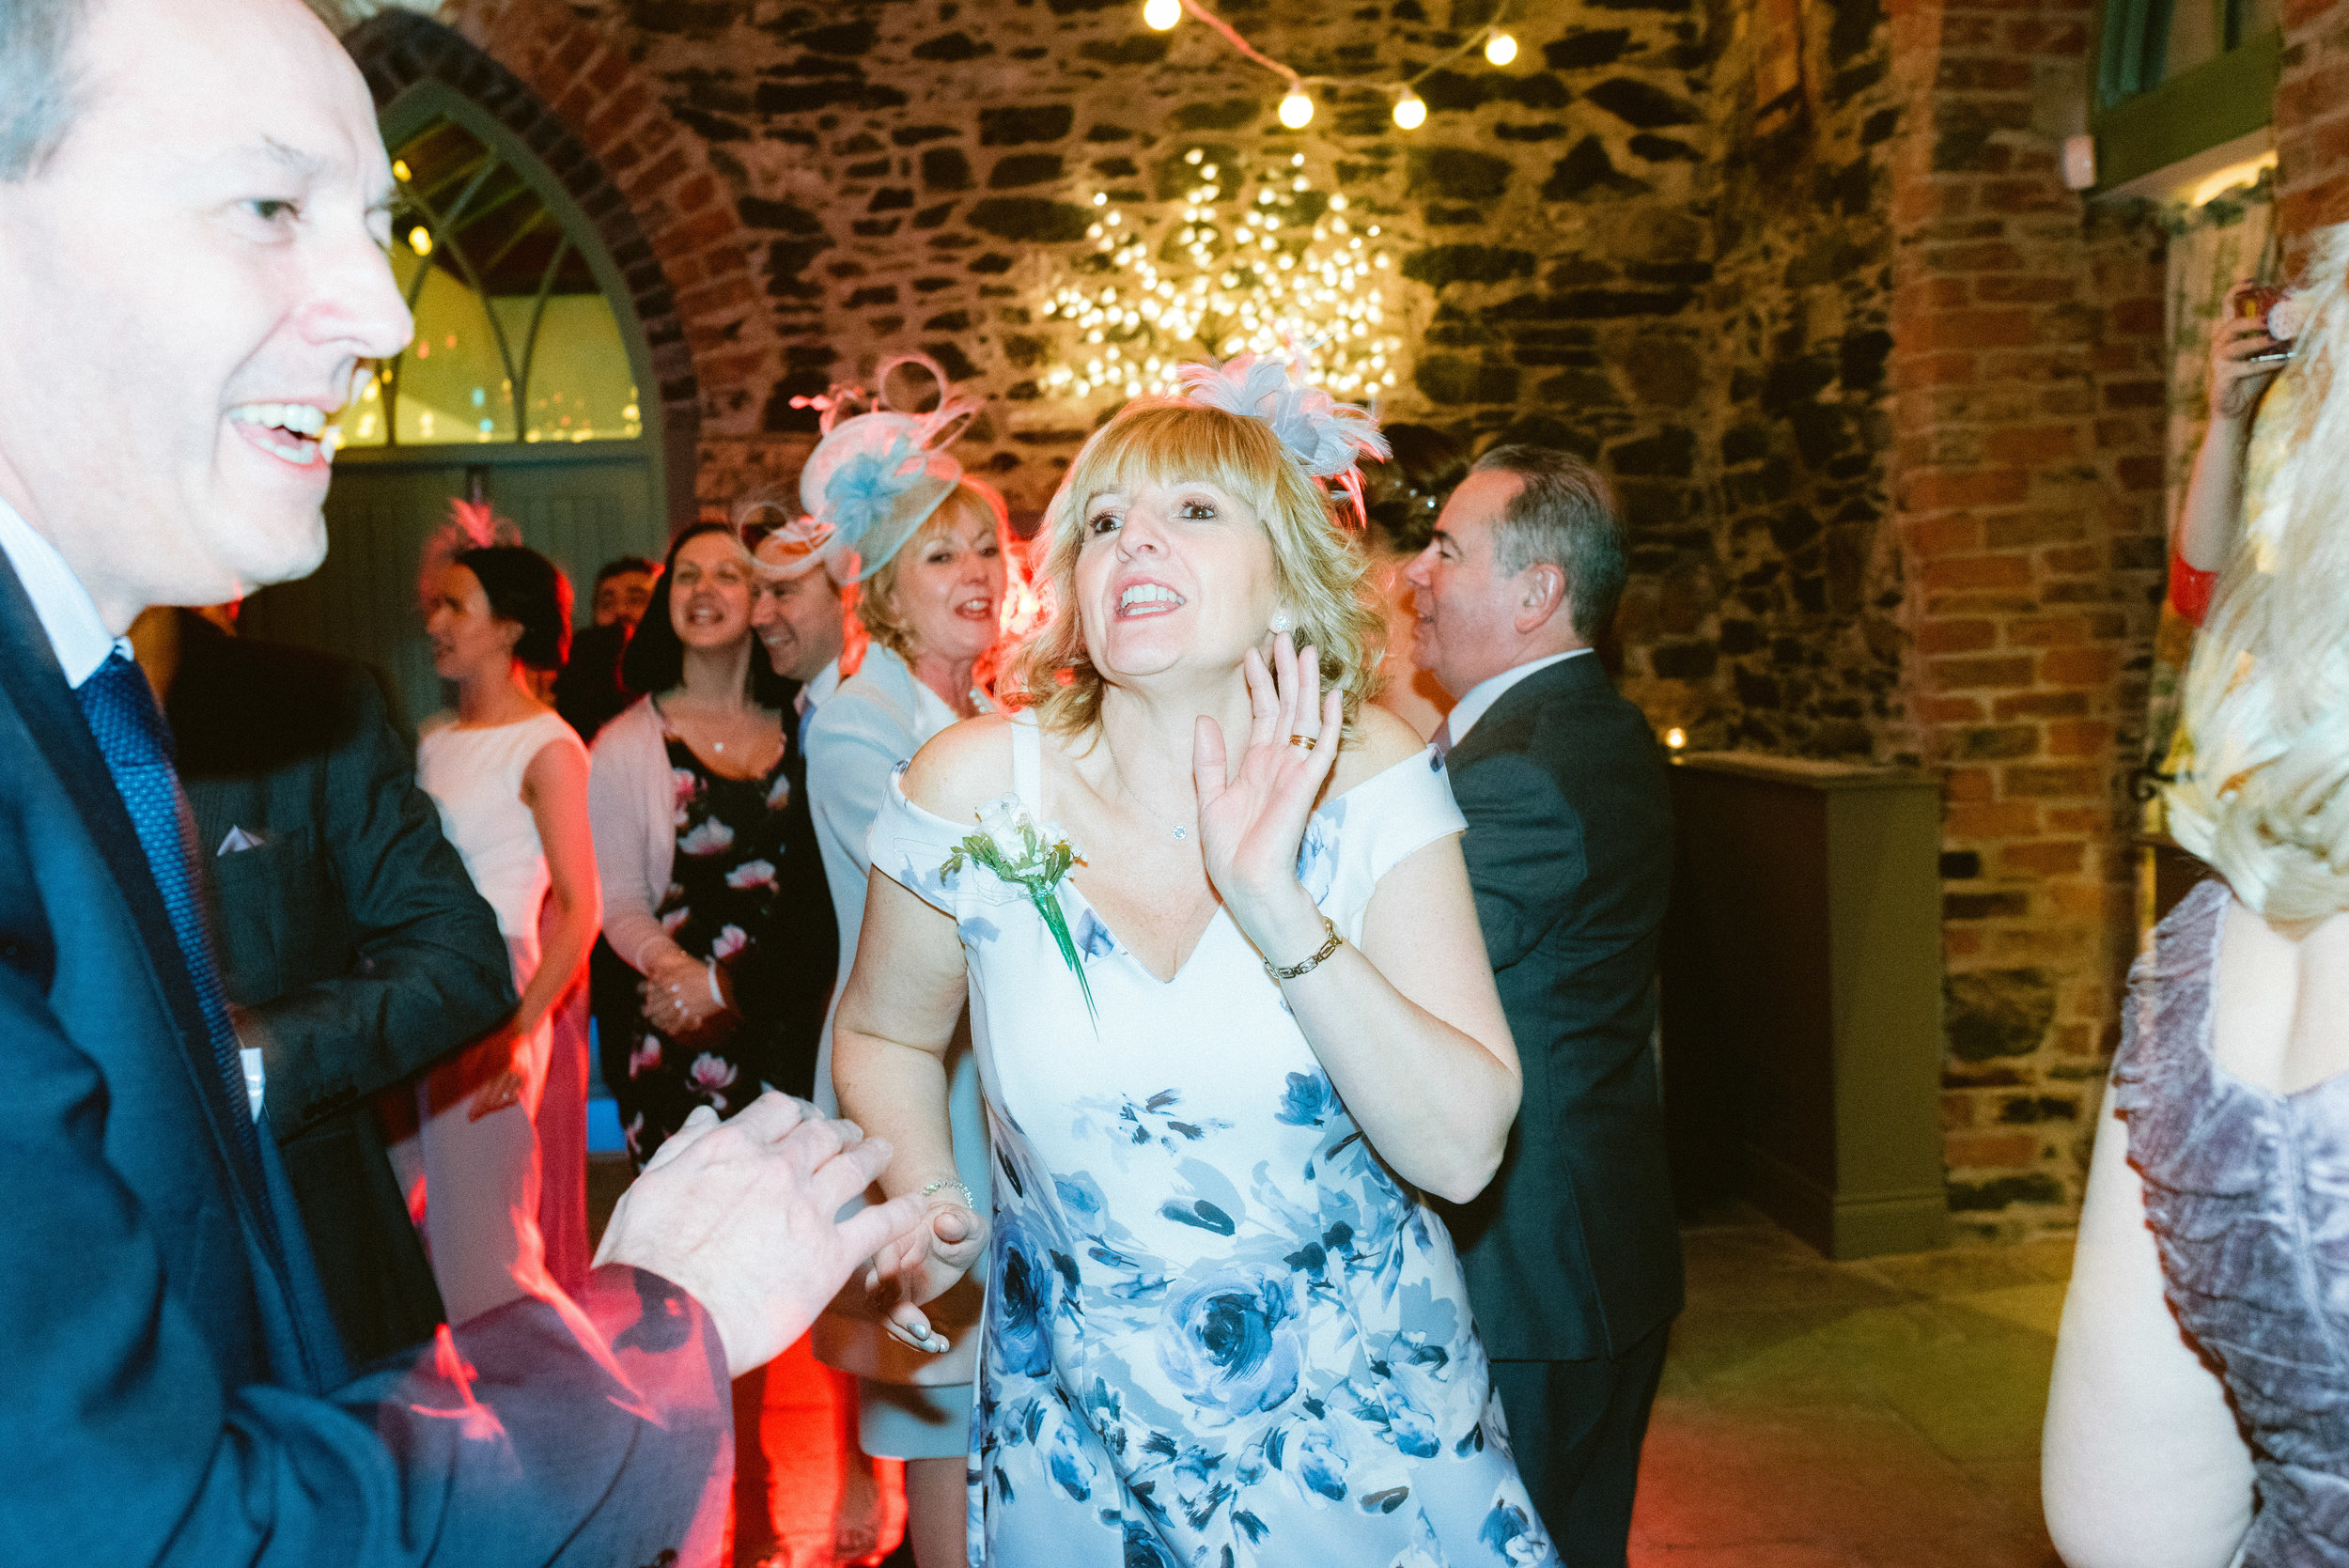 orange tree wedding, barn wedding venue northern ireland, rustic wedding venues NI, bright wedding venues northern ireland, greyabbey wedding venue, wedding speeches, first dance (19).jpg